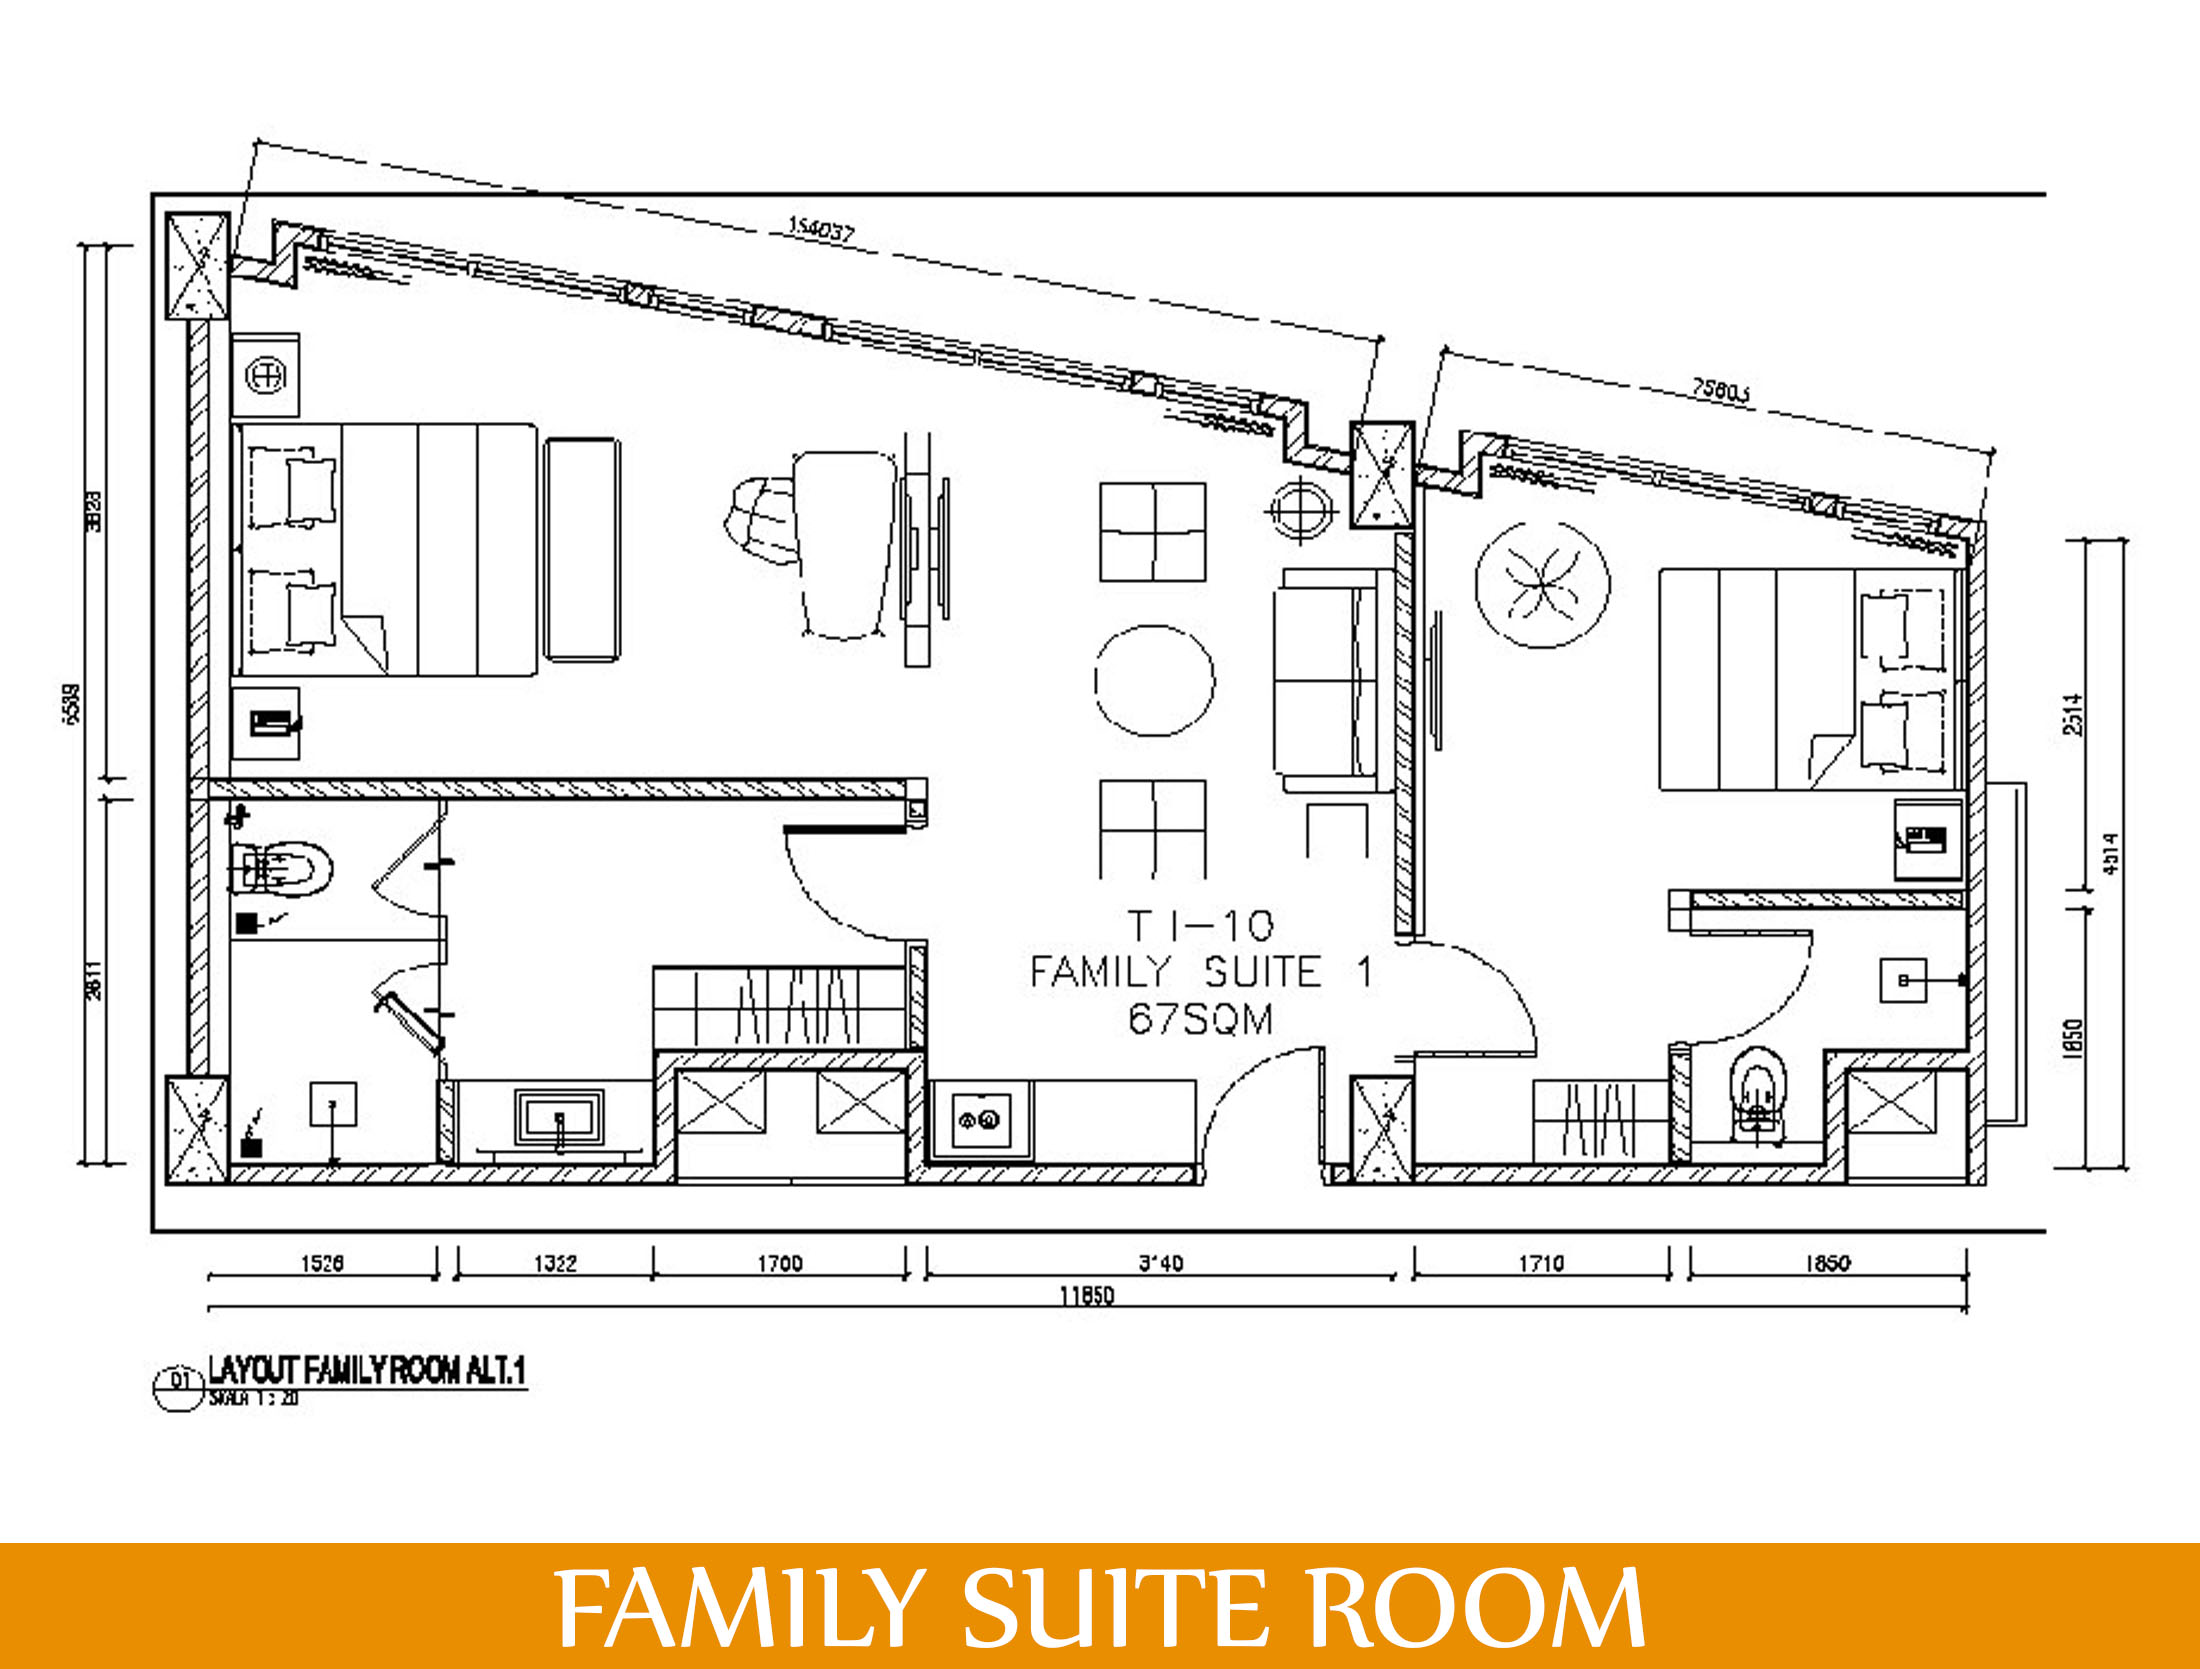 FAMILY SUITE ROOM.jpg